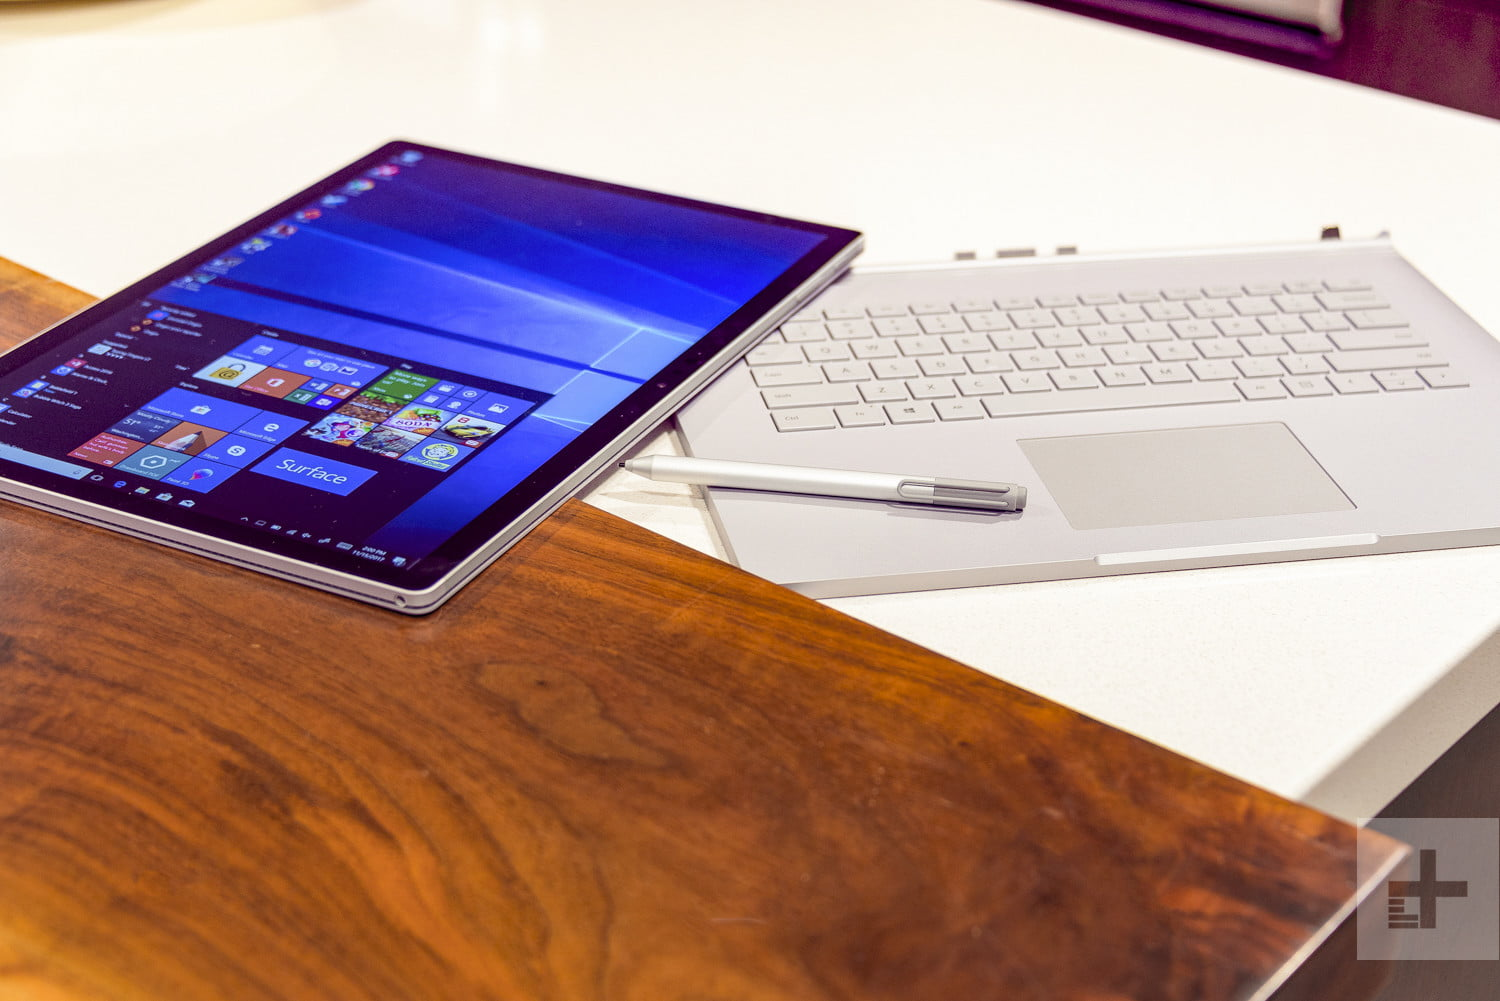 Microsoft Surface Book 2 15 Review: Worth Every Penny | Digital Trends